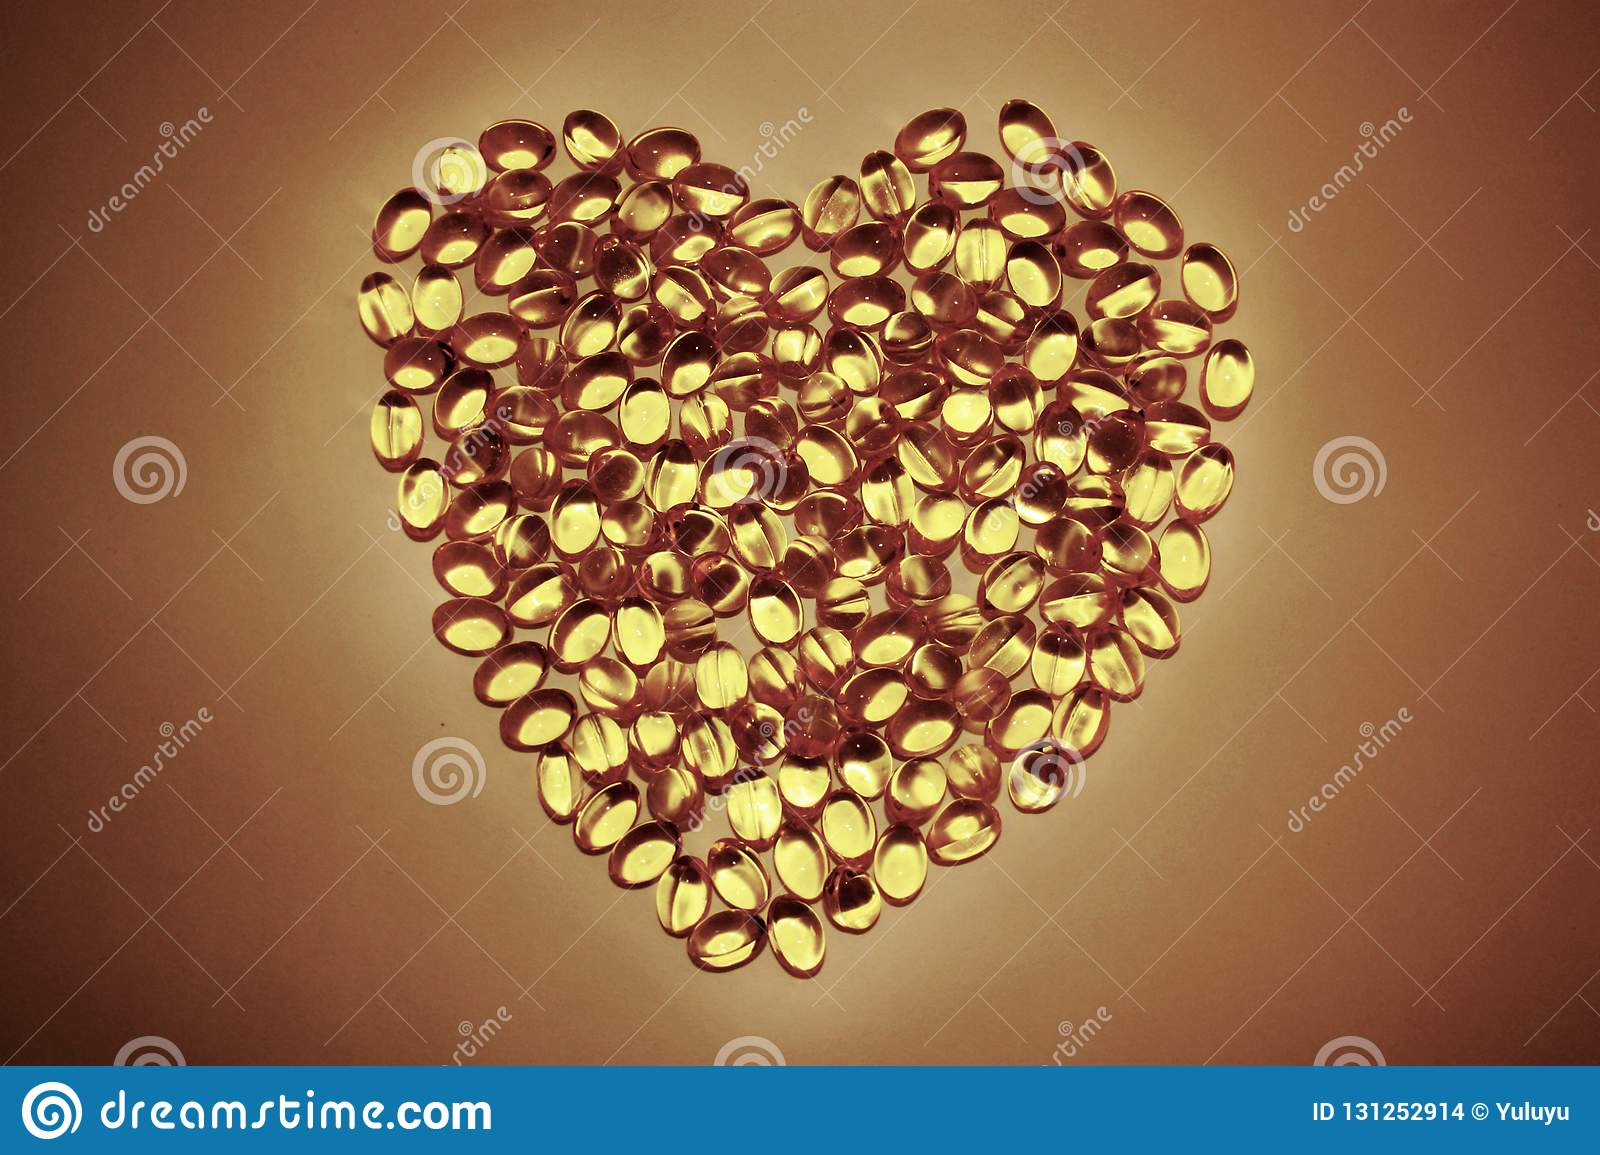 Gel pills lying in the shape of a heart on white background, yellow capsules omega 3.